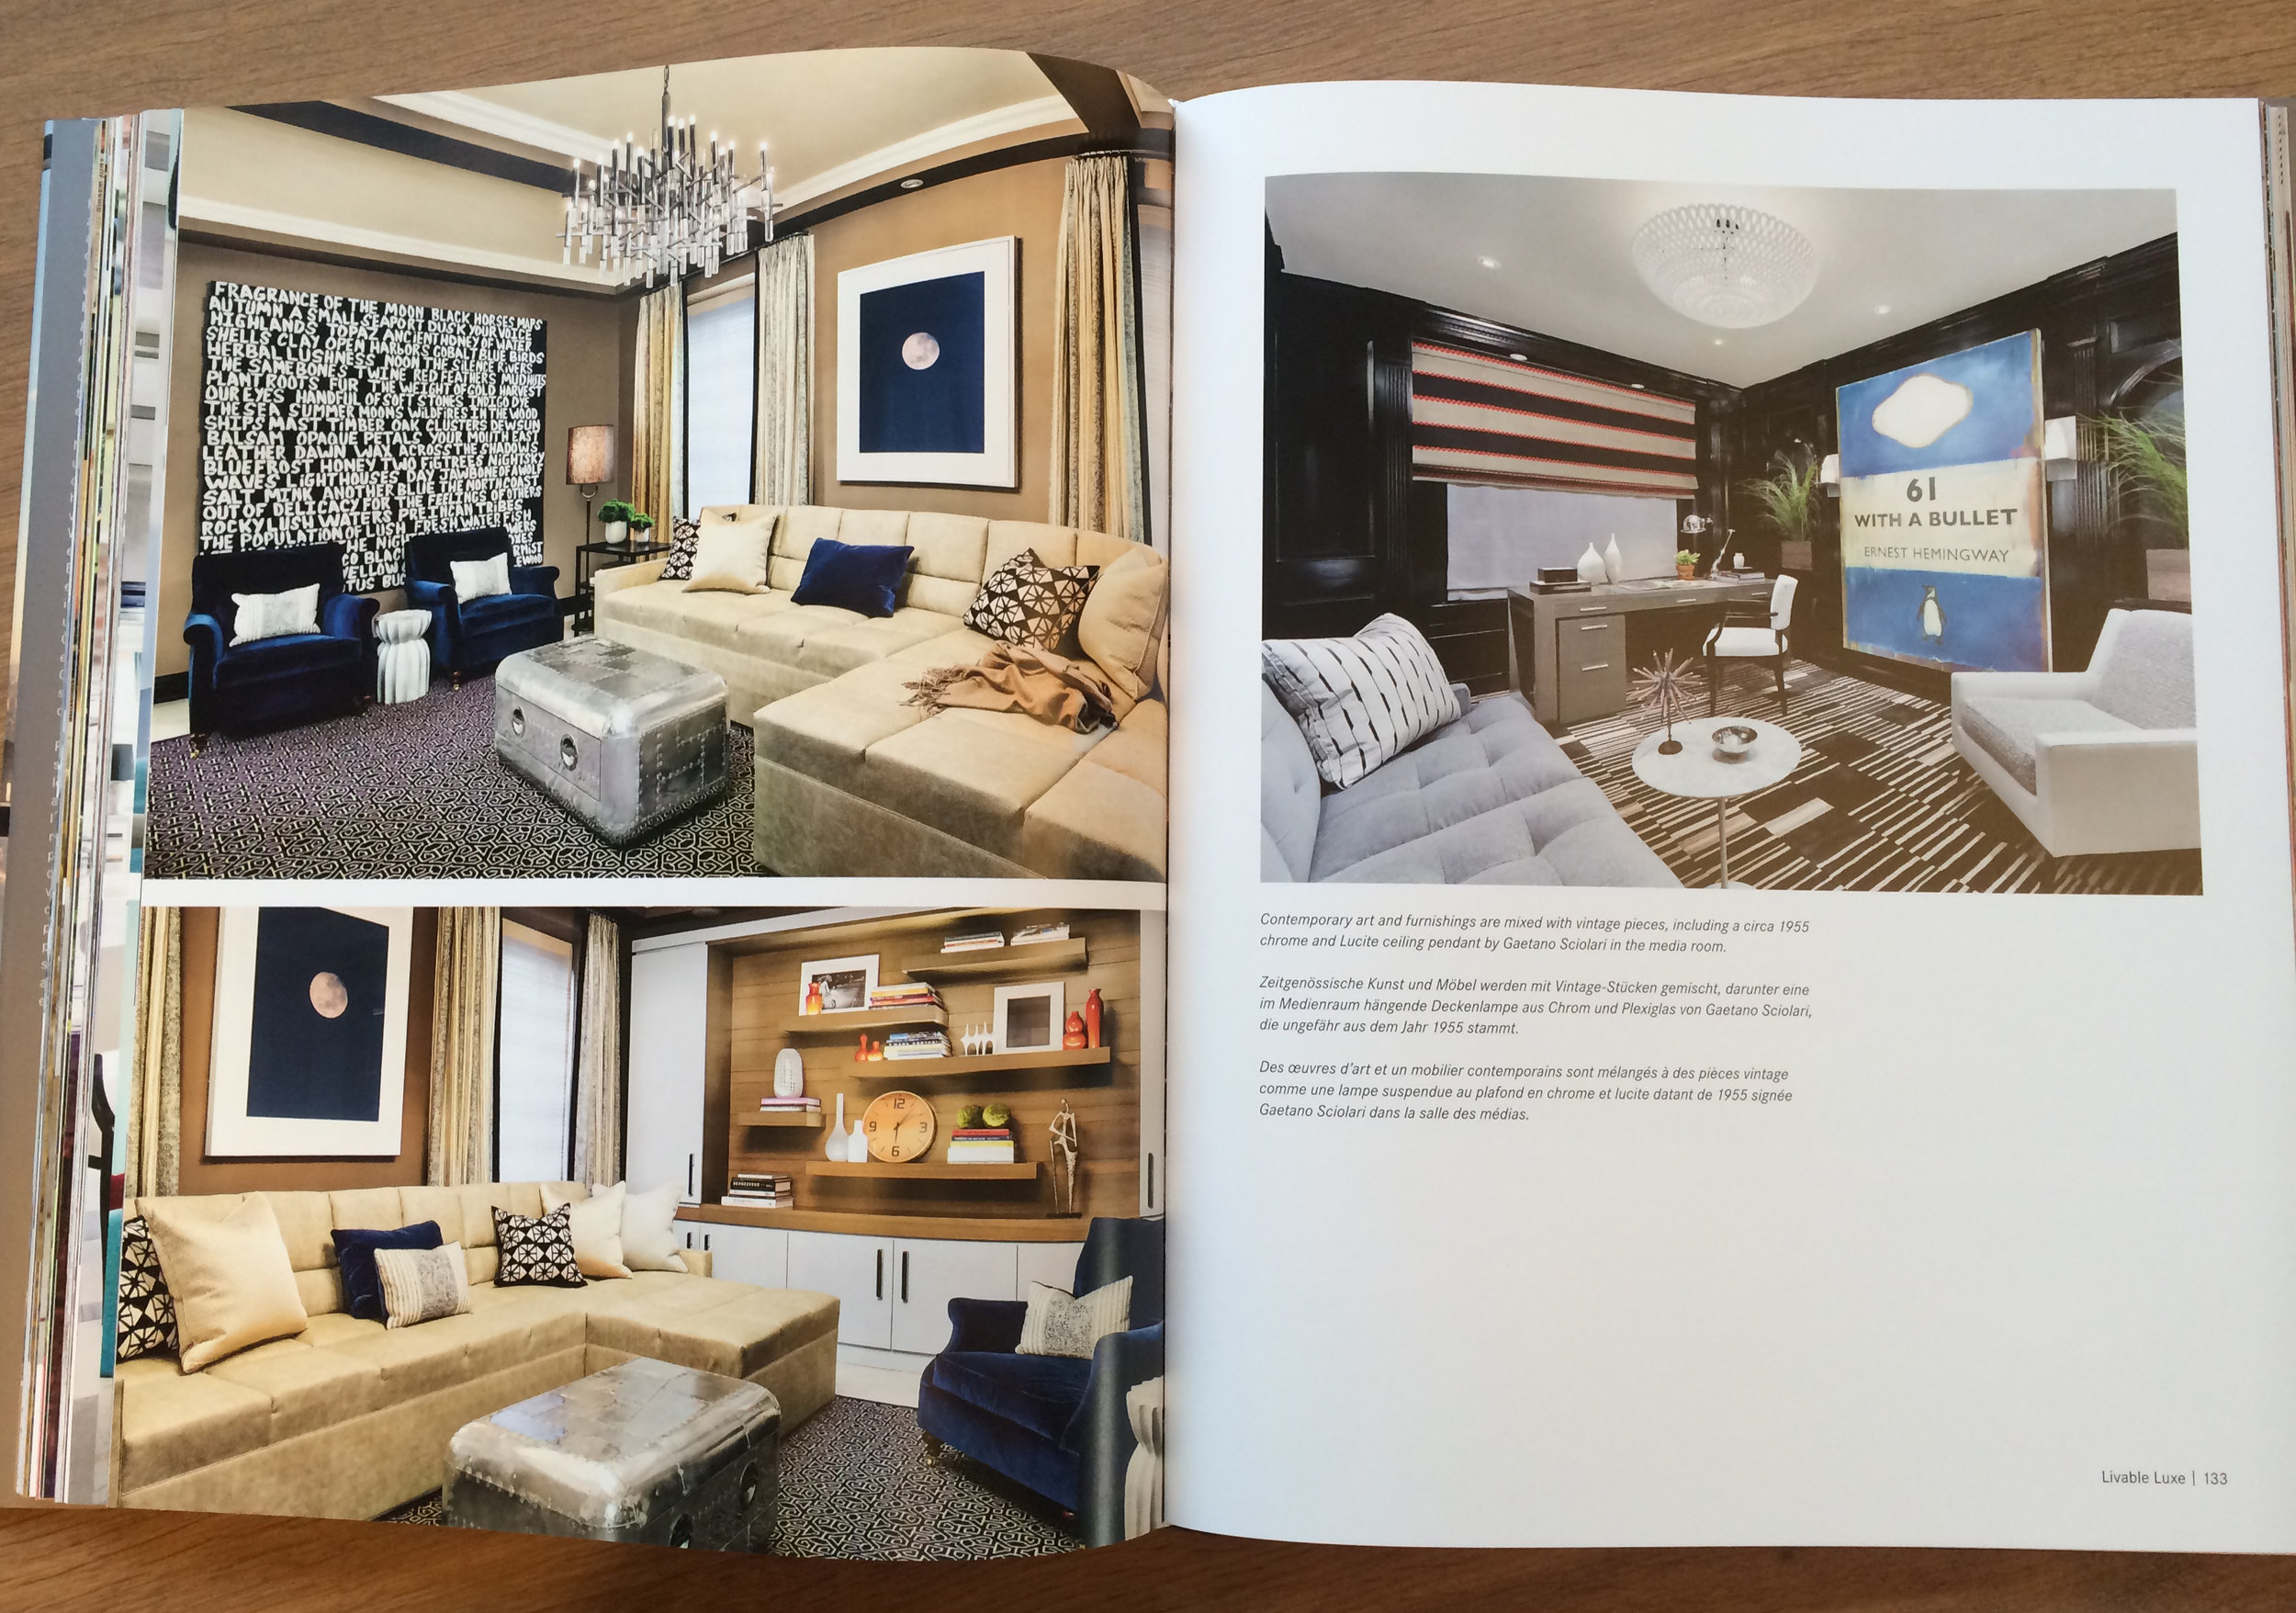 Living In Style New York Book 2014 - Page 11.JPG